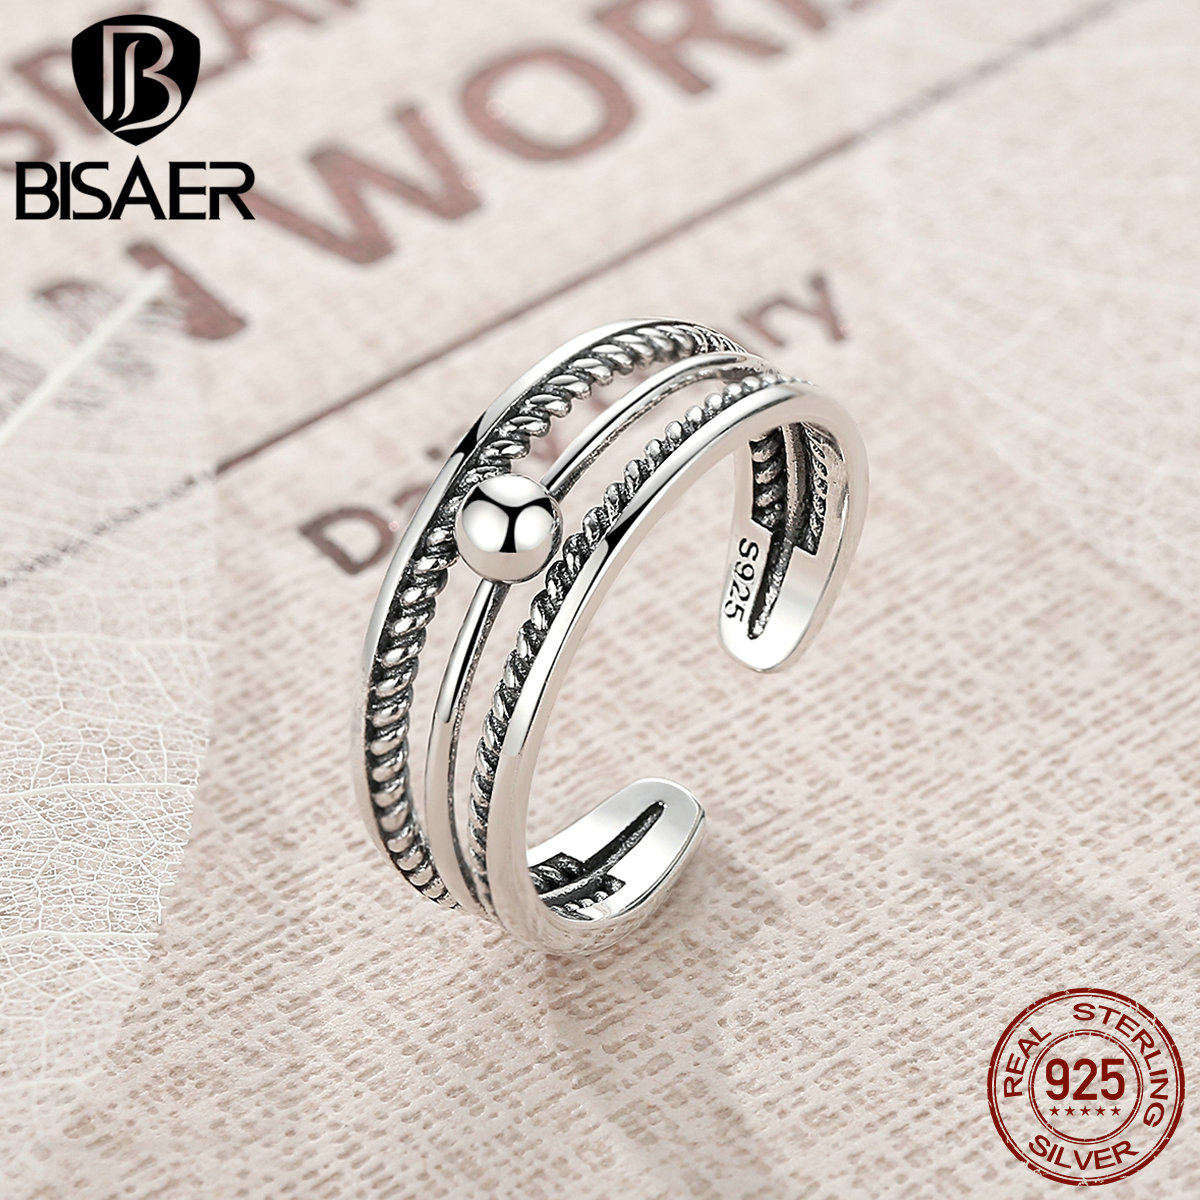 BISAER 100% 925 Sterling Silver Vintage Cross Star Feather Wings Female Finger Rings for Women Sterling Silver Jewelry S925